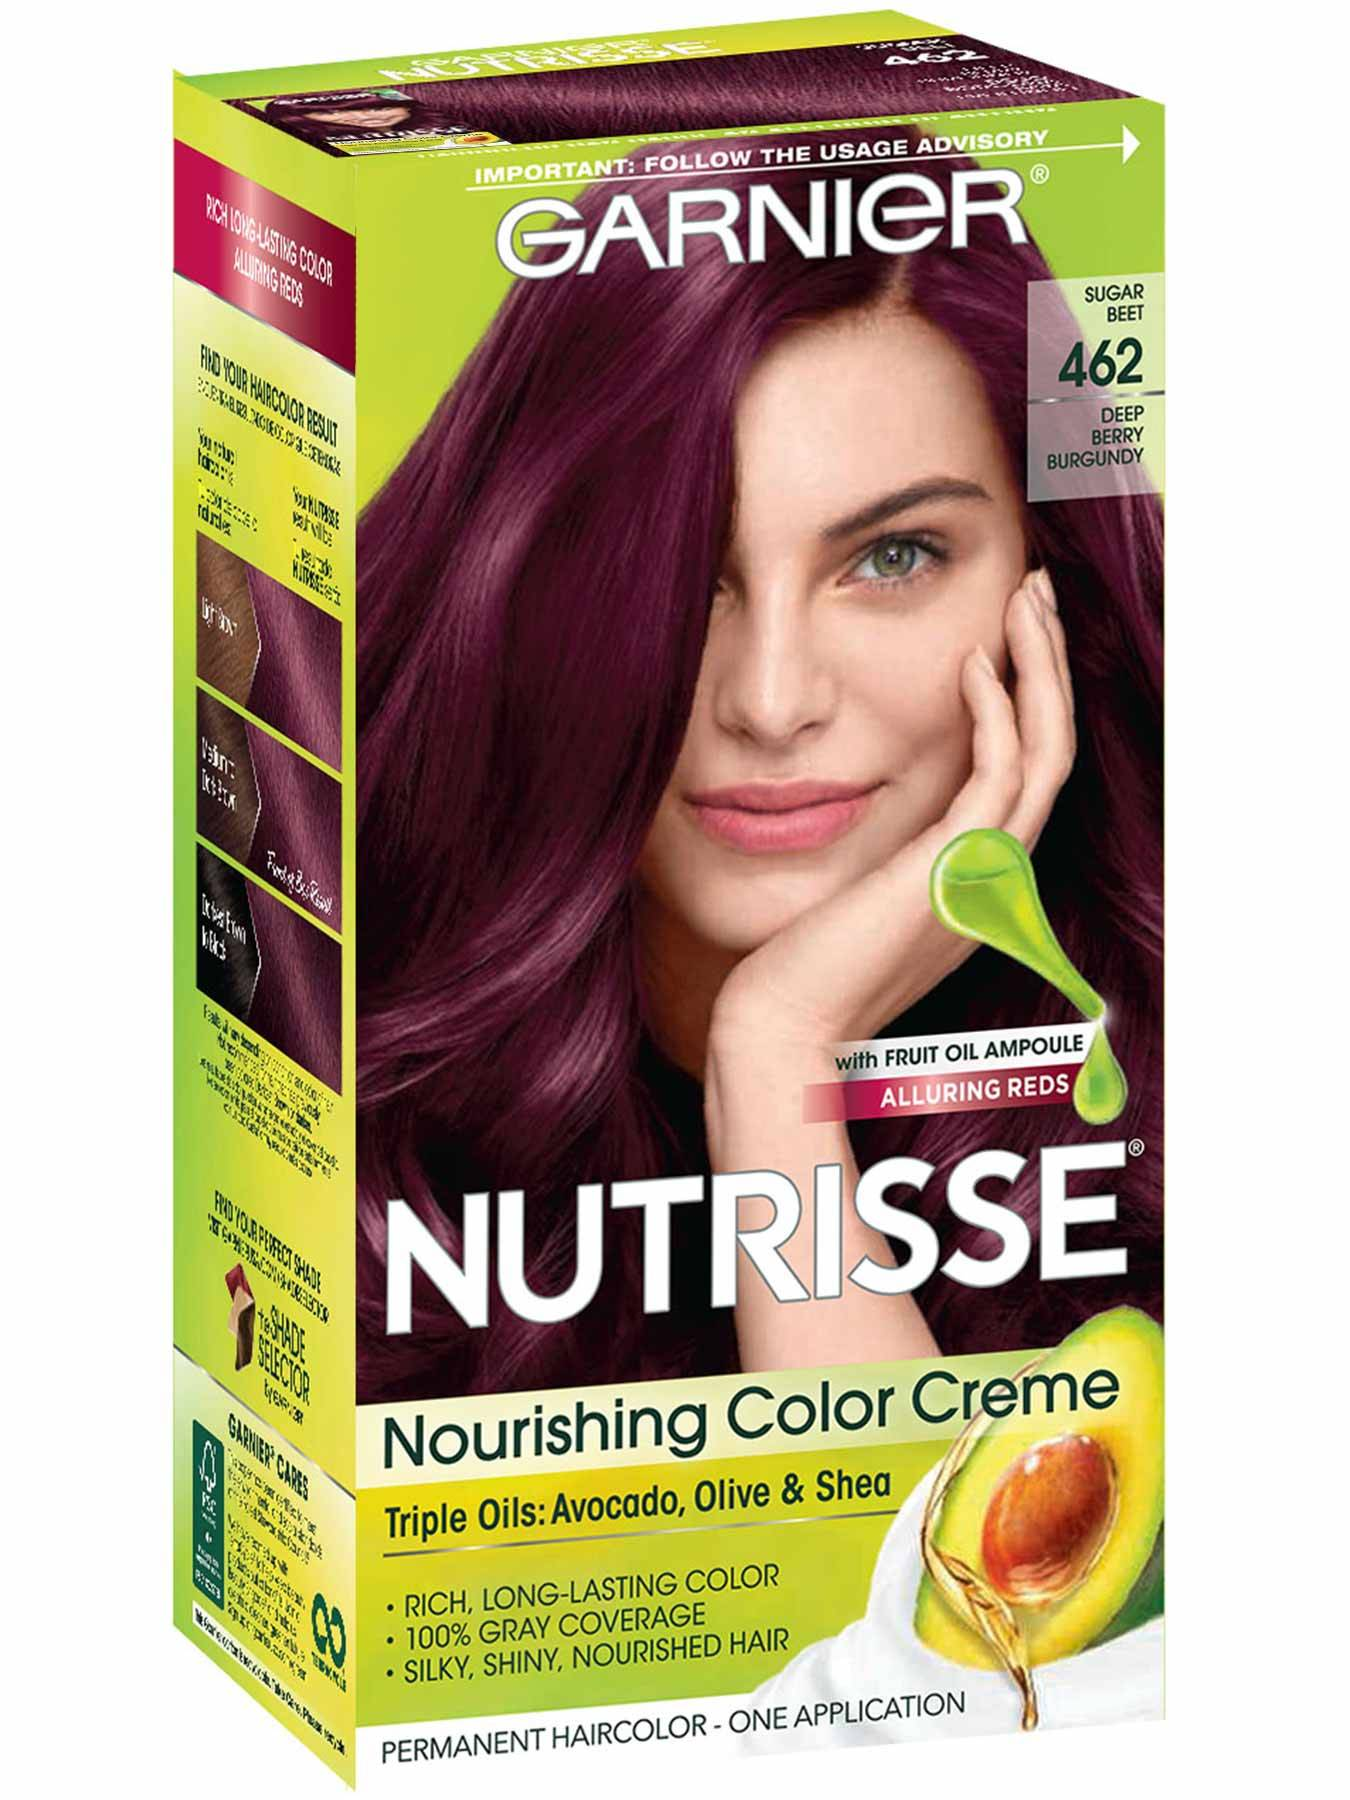 Nutrisse Nourishing Color Creme - Deep Berry Burgundy 462 - Garnier